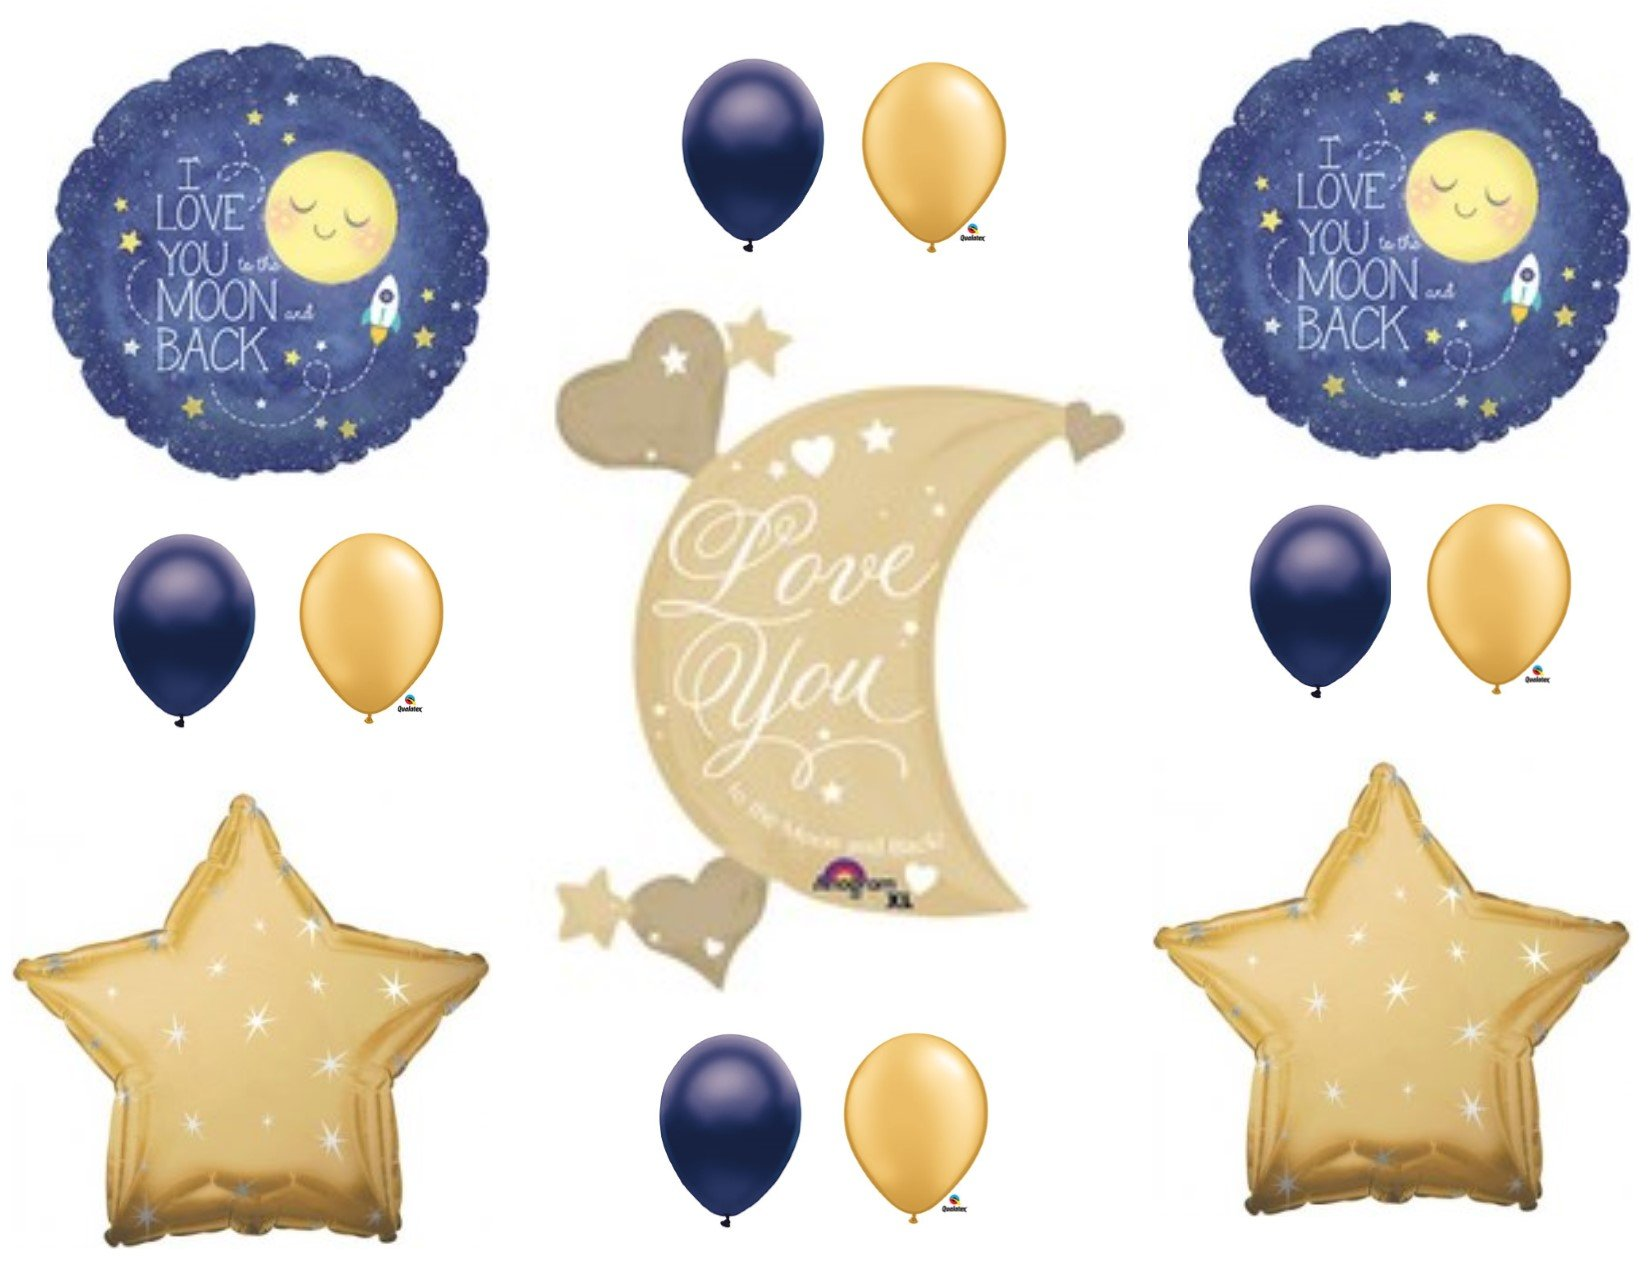 XL LOVE YOU TO MOON AND BACK Navy & Gold Birthday Baby Shower Balloons Decorations